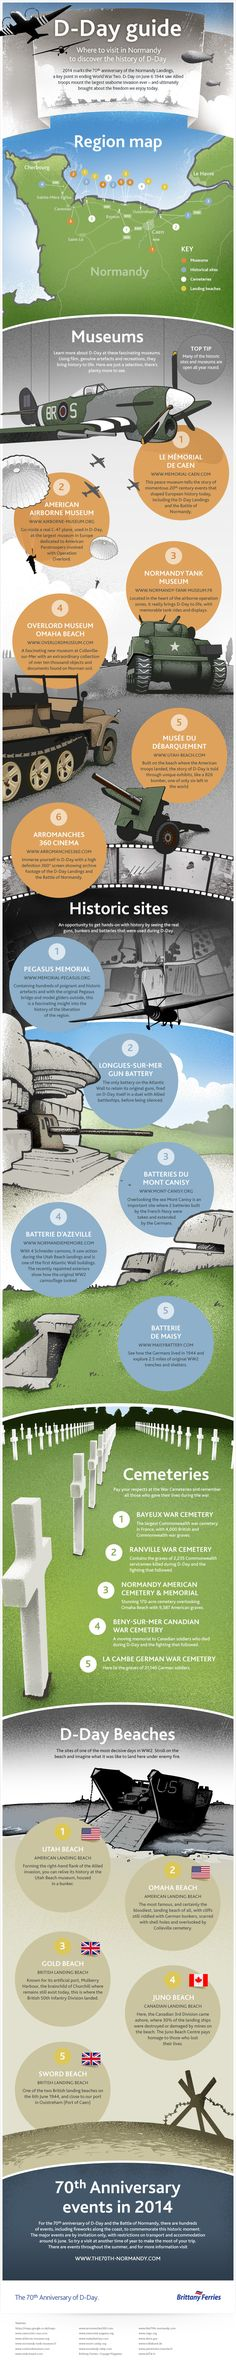 Infographic: Where to Visit in Normandy to Discover the History of D-Day #infographic